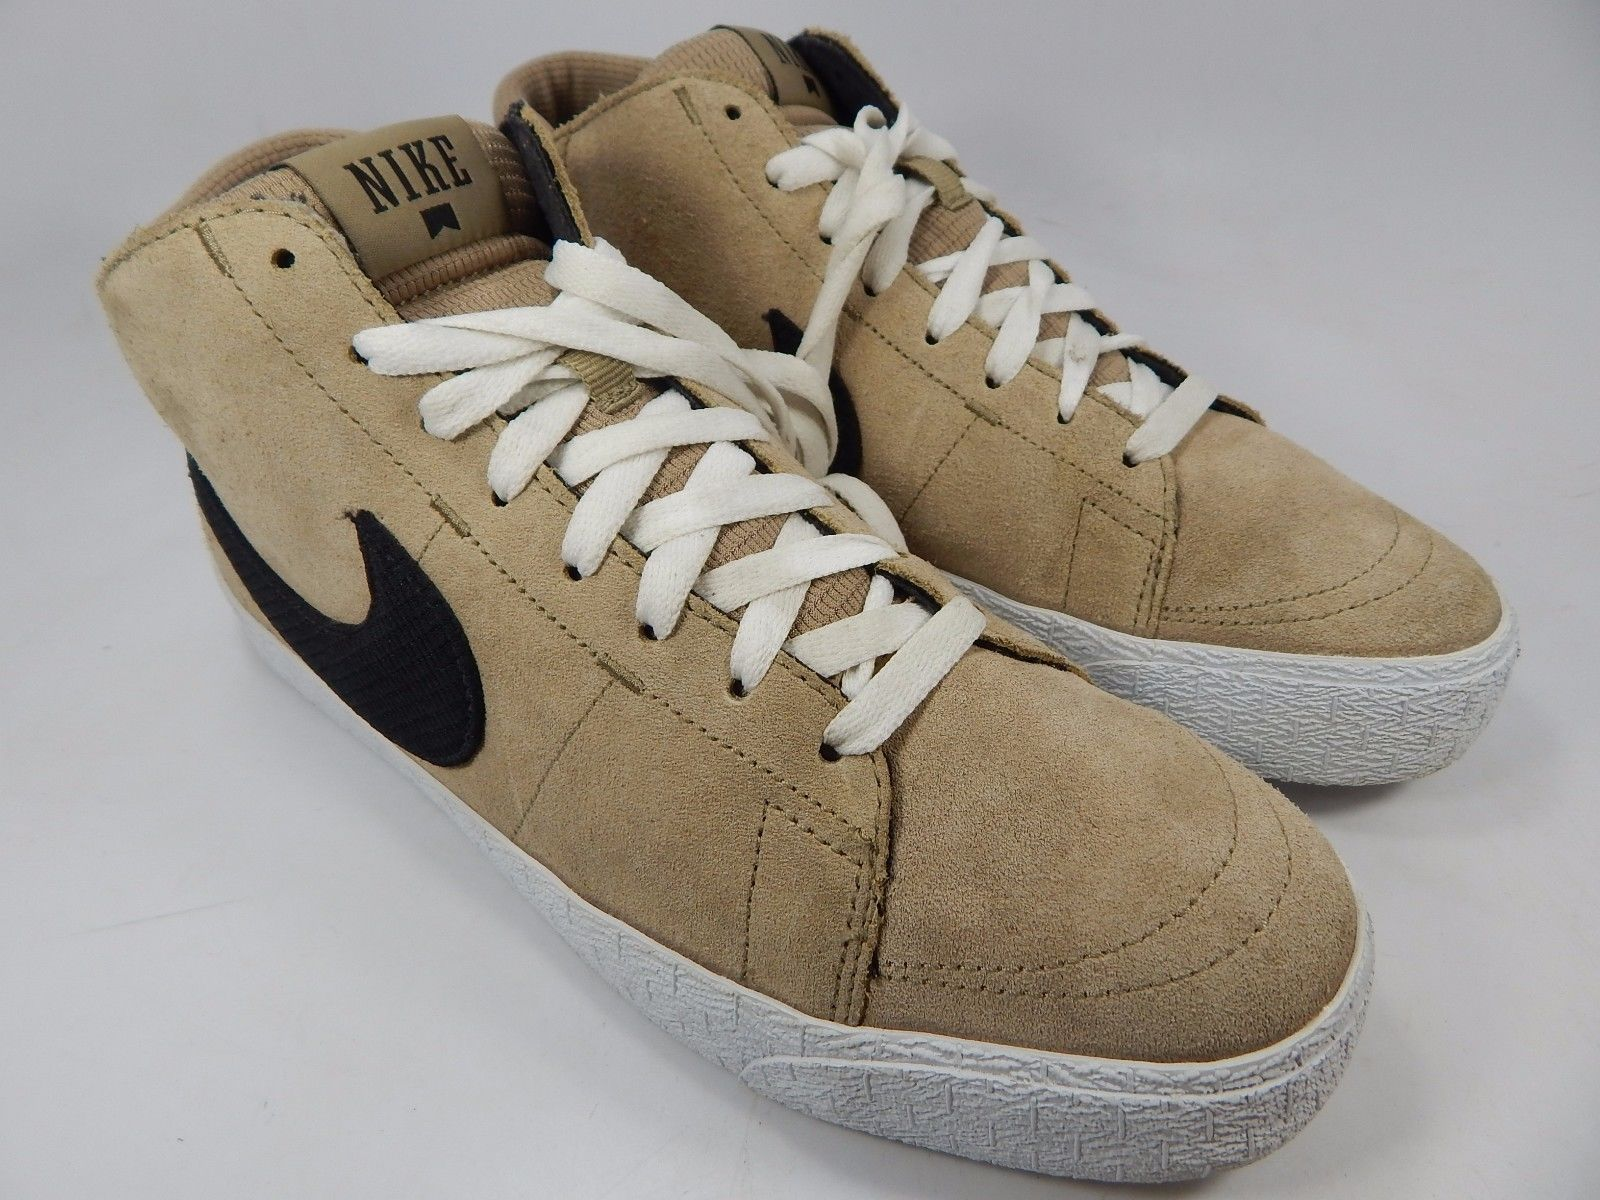 Nike Blazer Mid Men's Athletic Shoes Size US 10 M (D) EU 44 Beige 510965-201